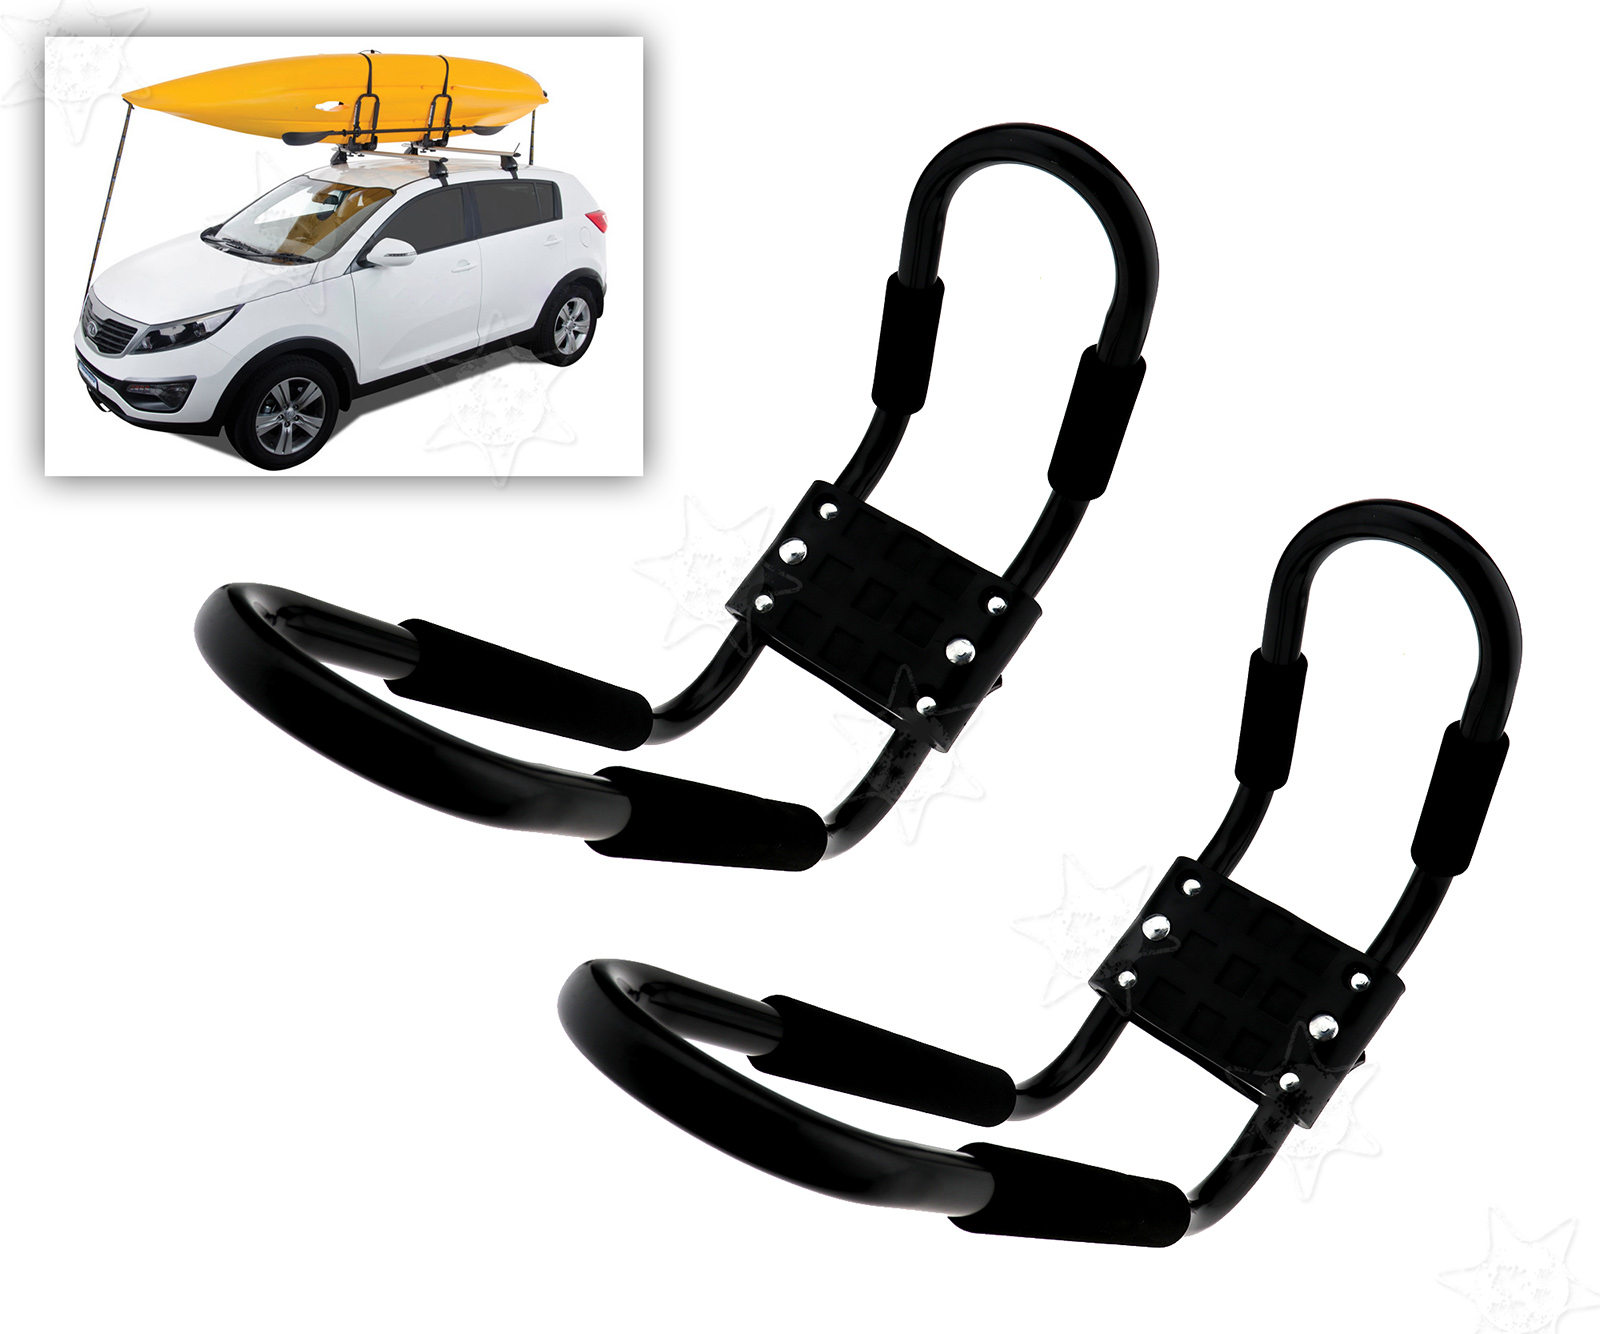 Kayak Roof Rack J Bars With 2 Tie Down Straps Car Carrier